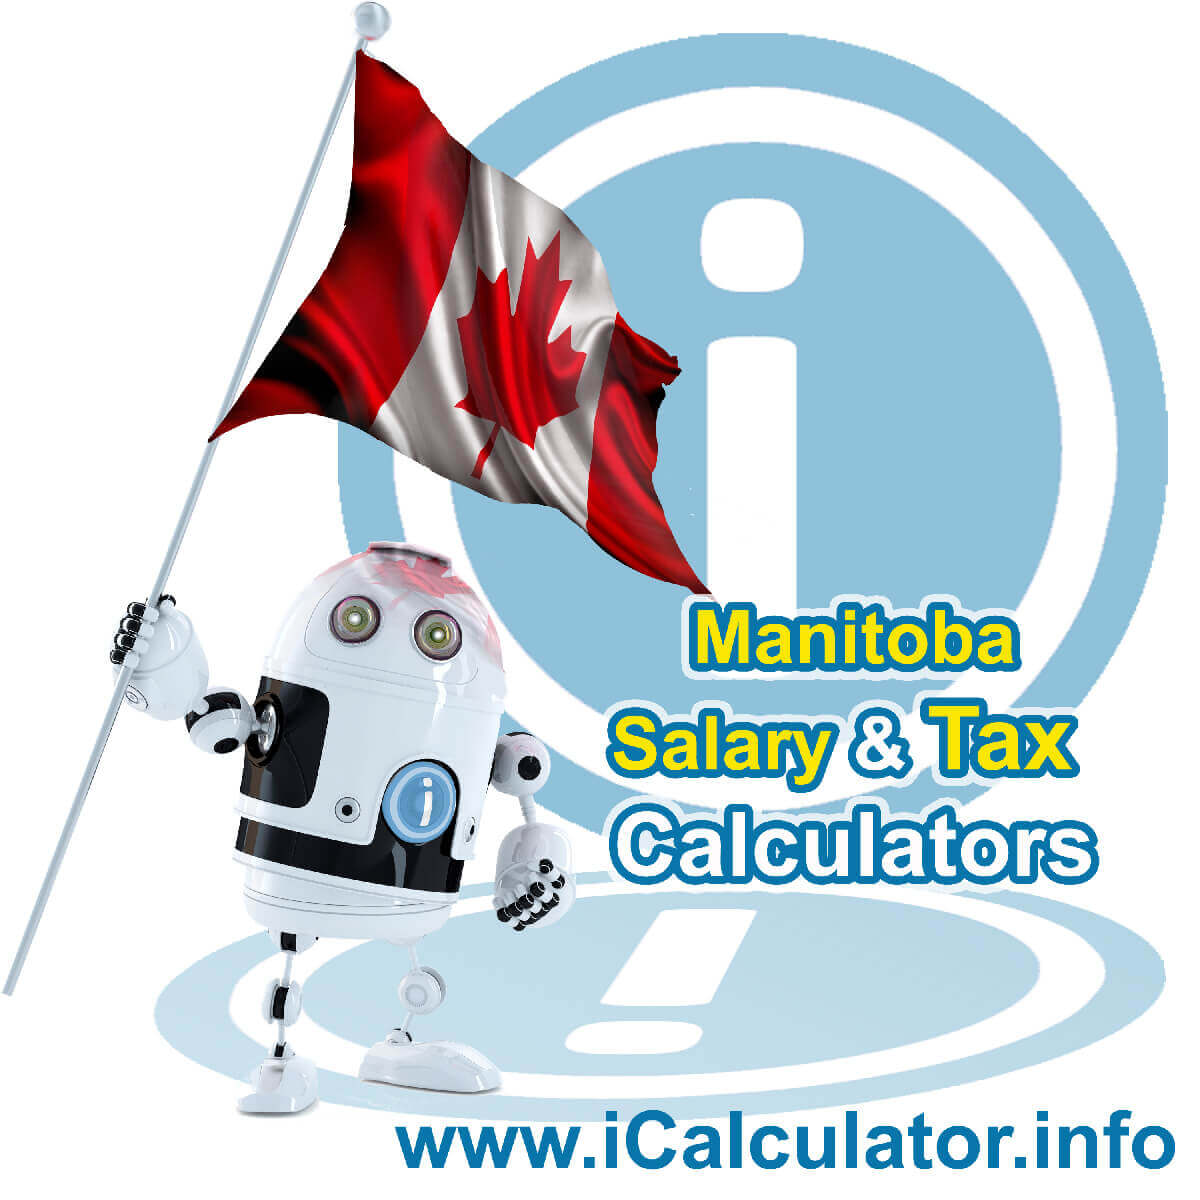 Manitoba 2020 Salary Comparison Calculator. This image shows the Manitoba flag and information relating to the tax formula used in the Manitoba 2020 Salary Comparison Calculator